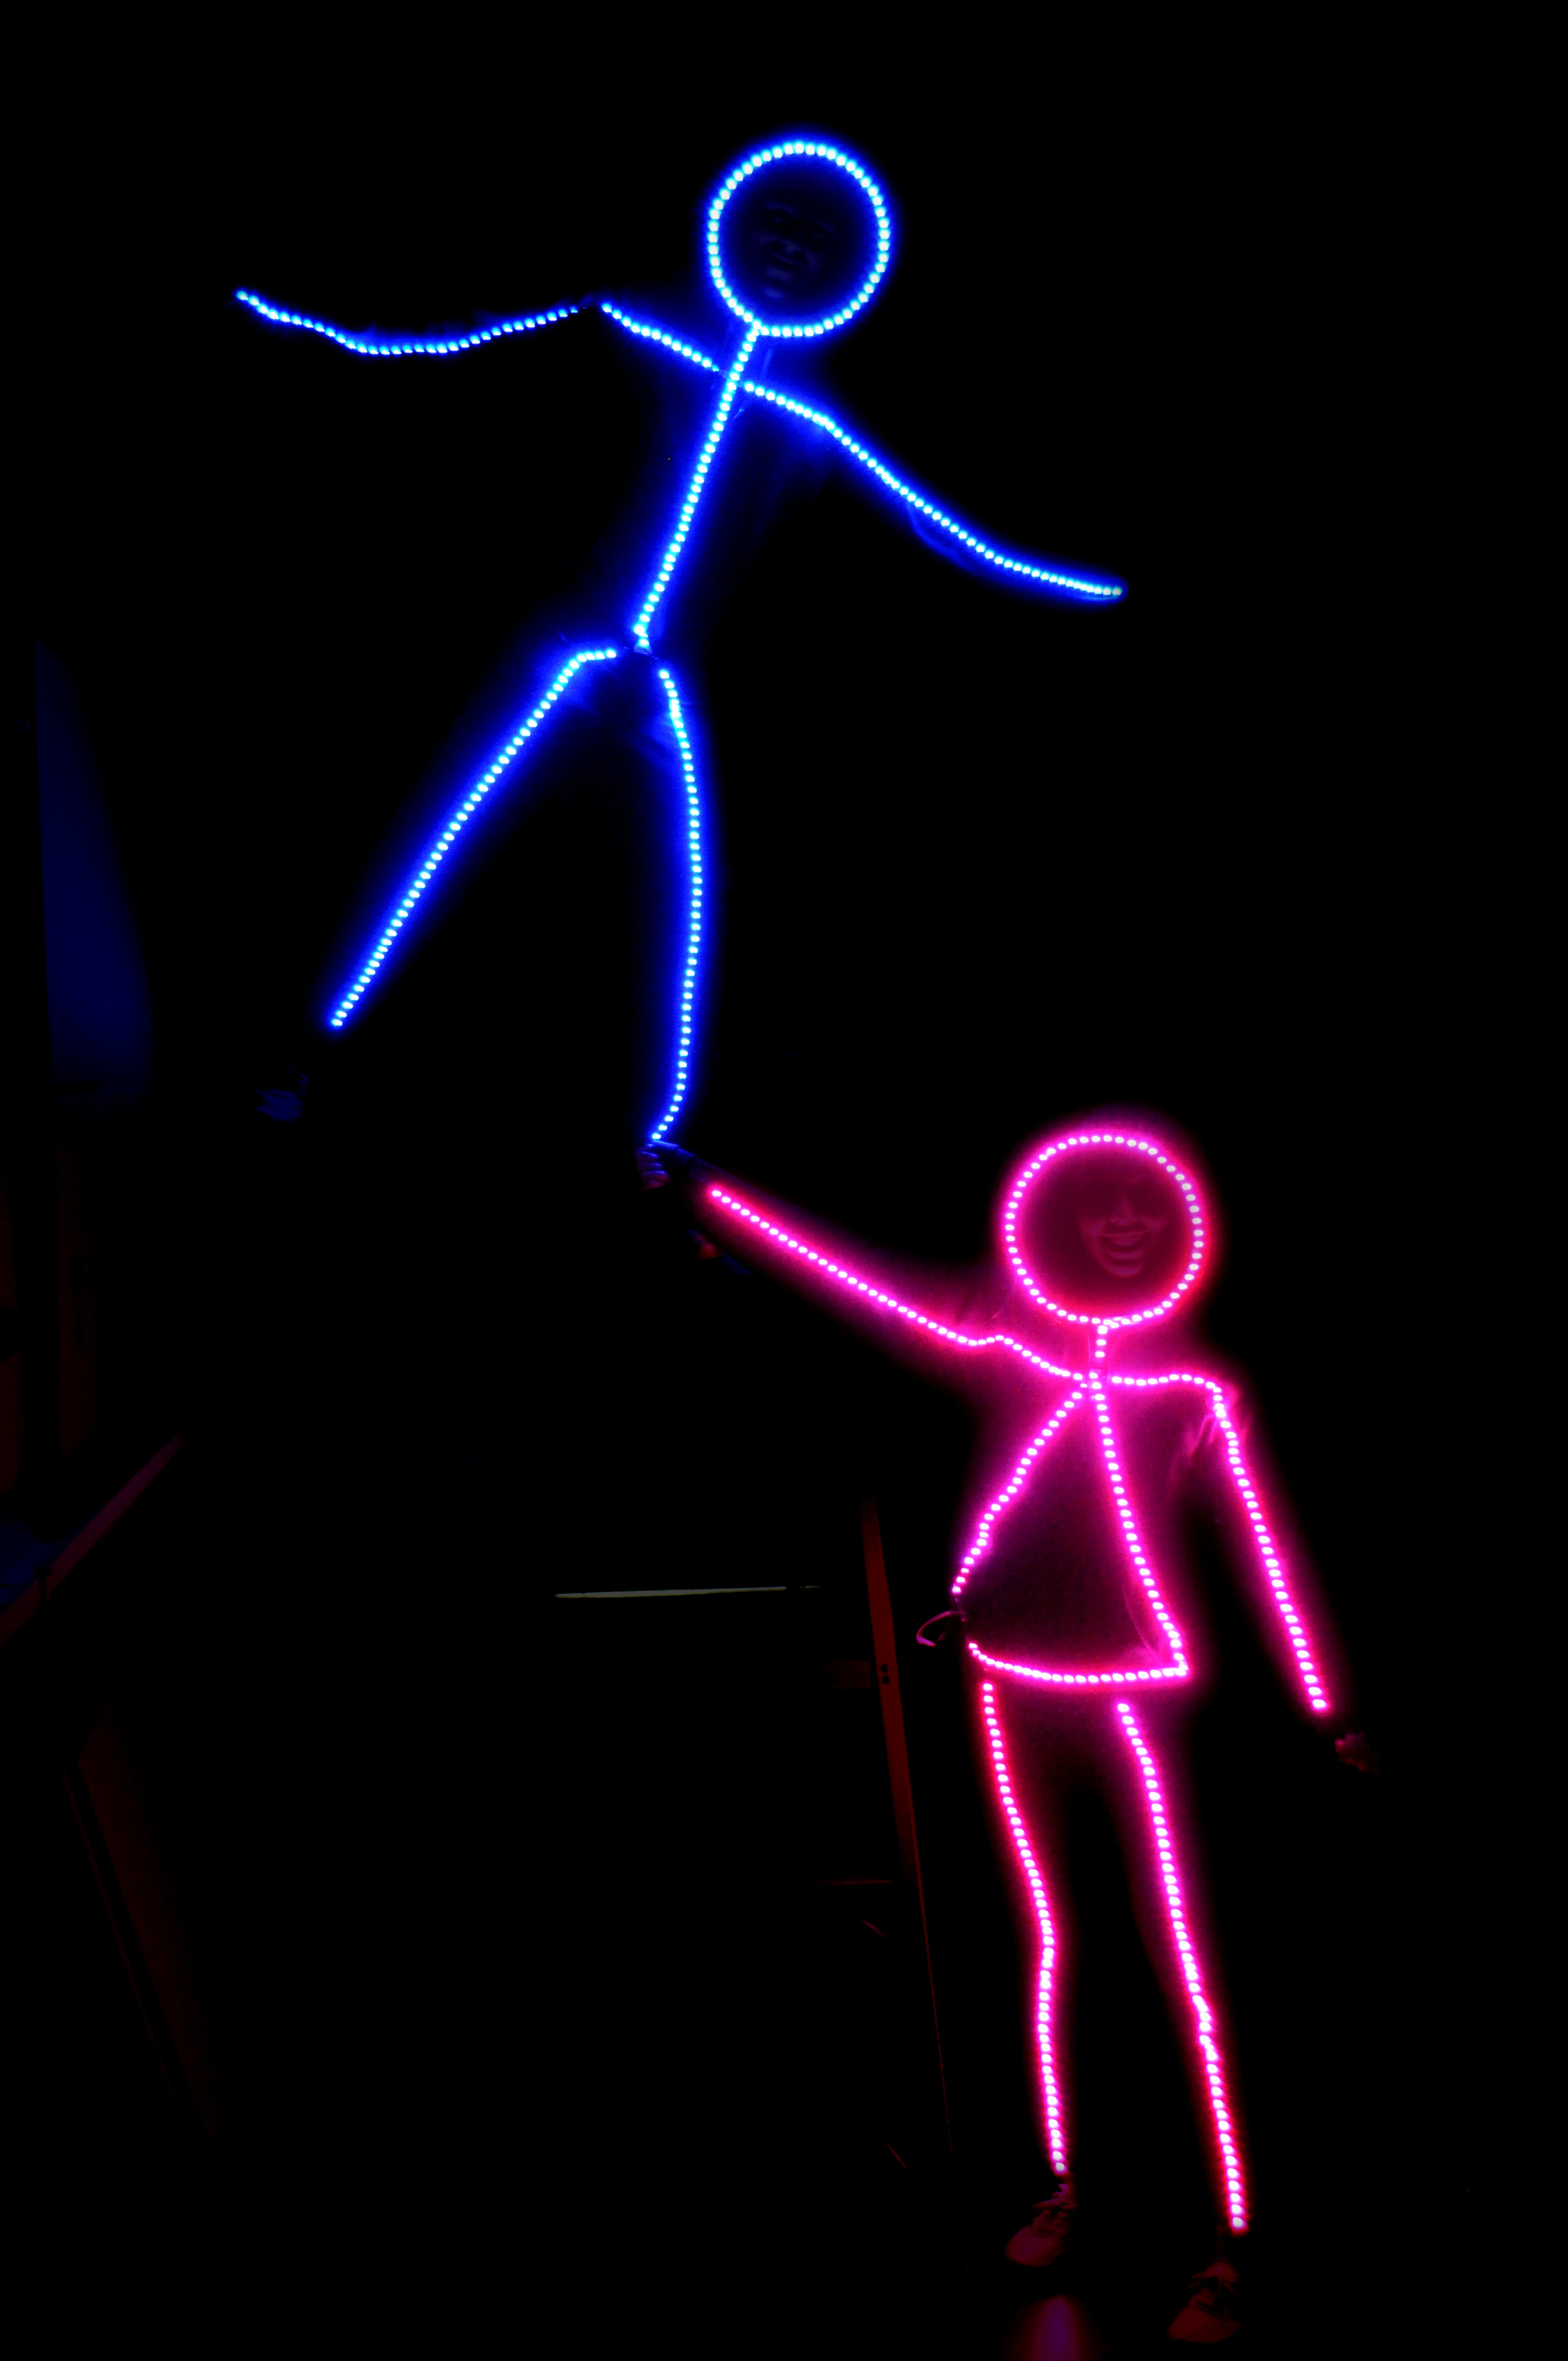 led light stick figure halloween costume